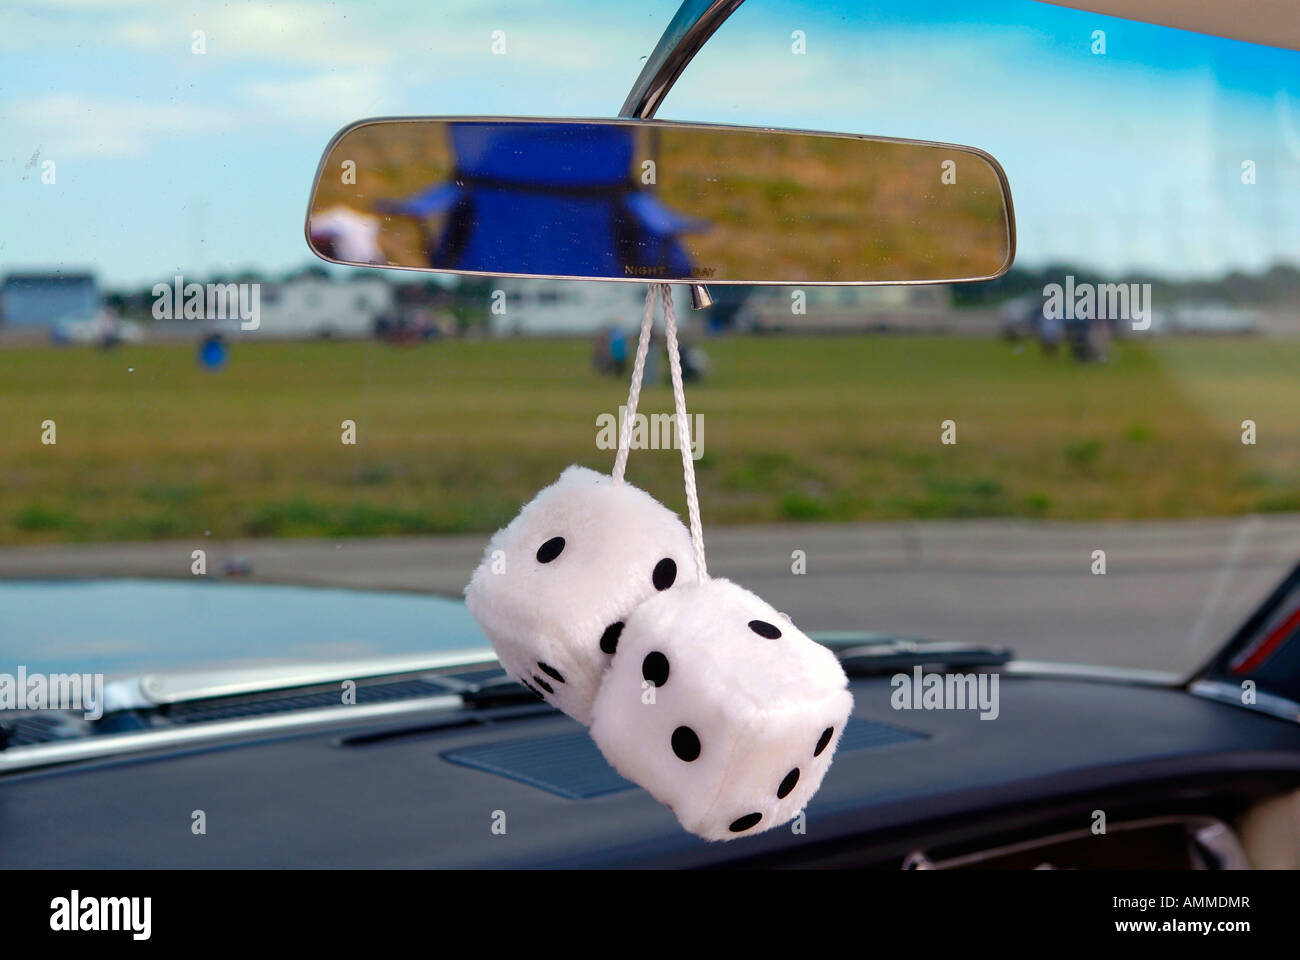 Decorative Cotton Dice Hanging On The Rear View Mirror Of 1950 S Car